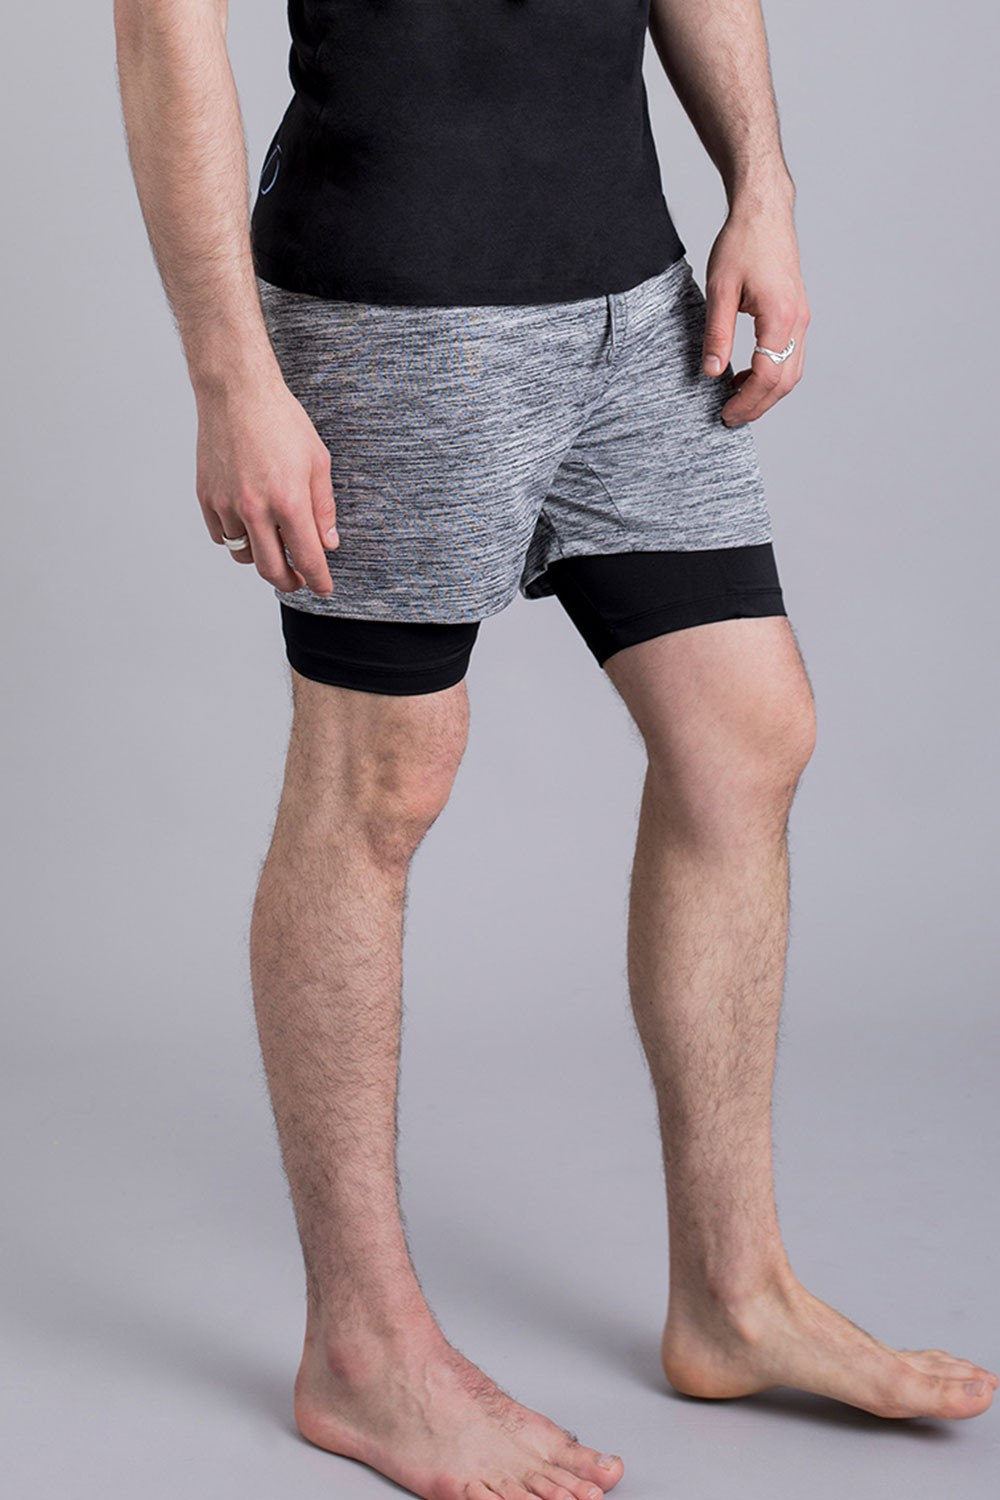 The best types of men's yoga shorts